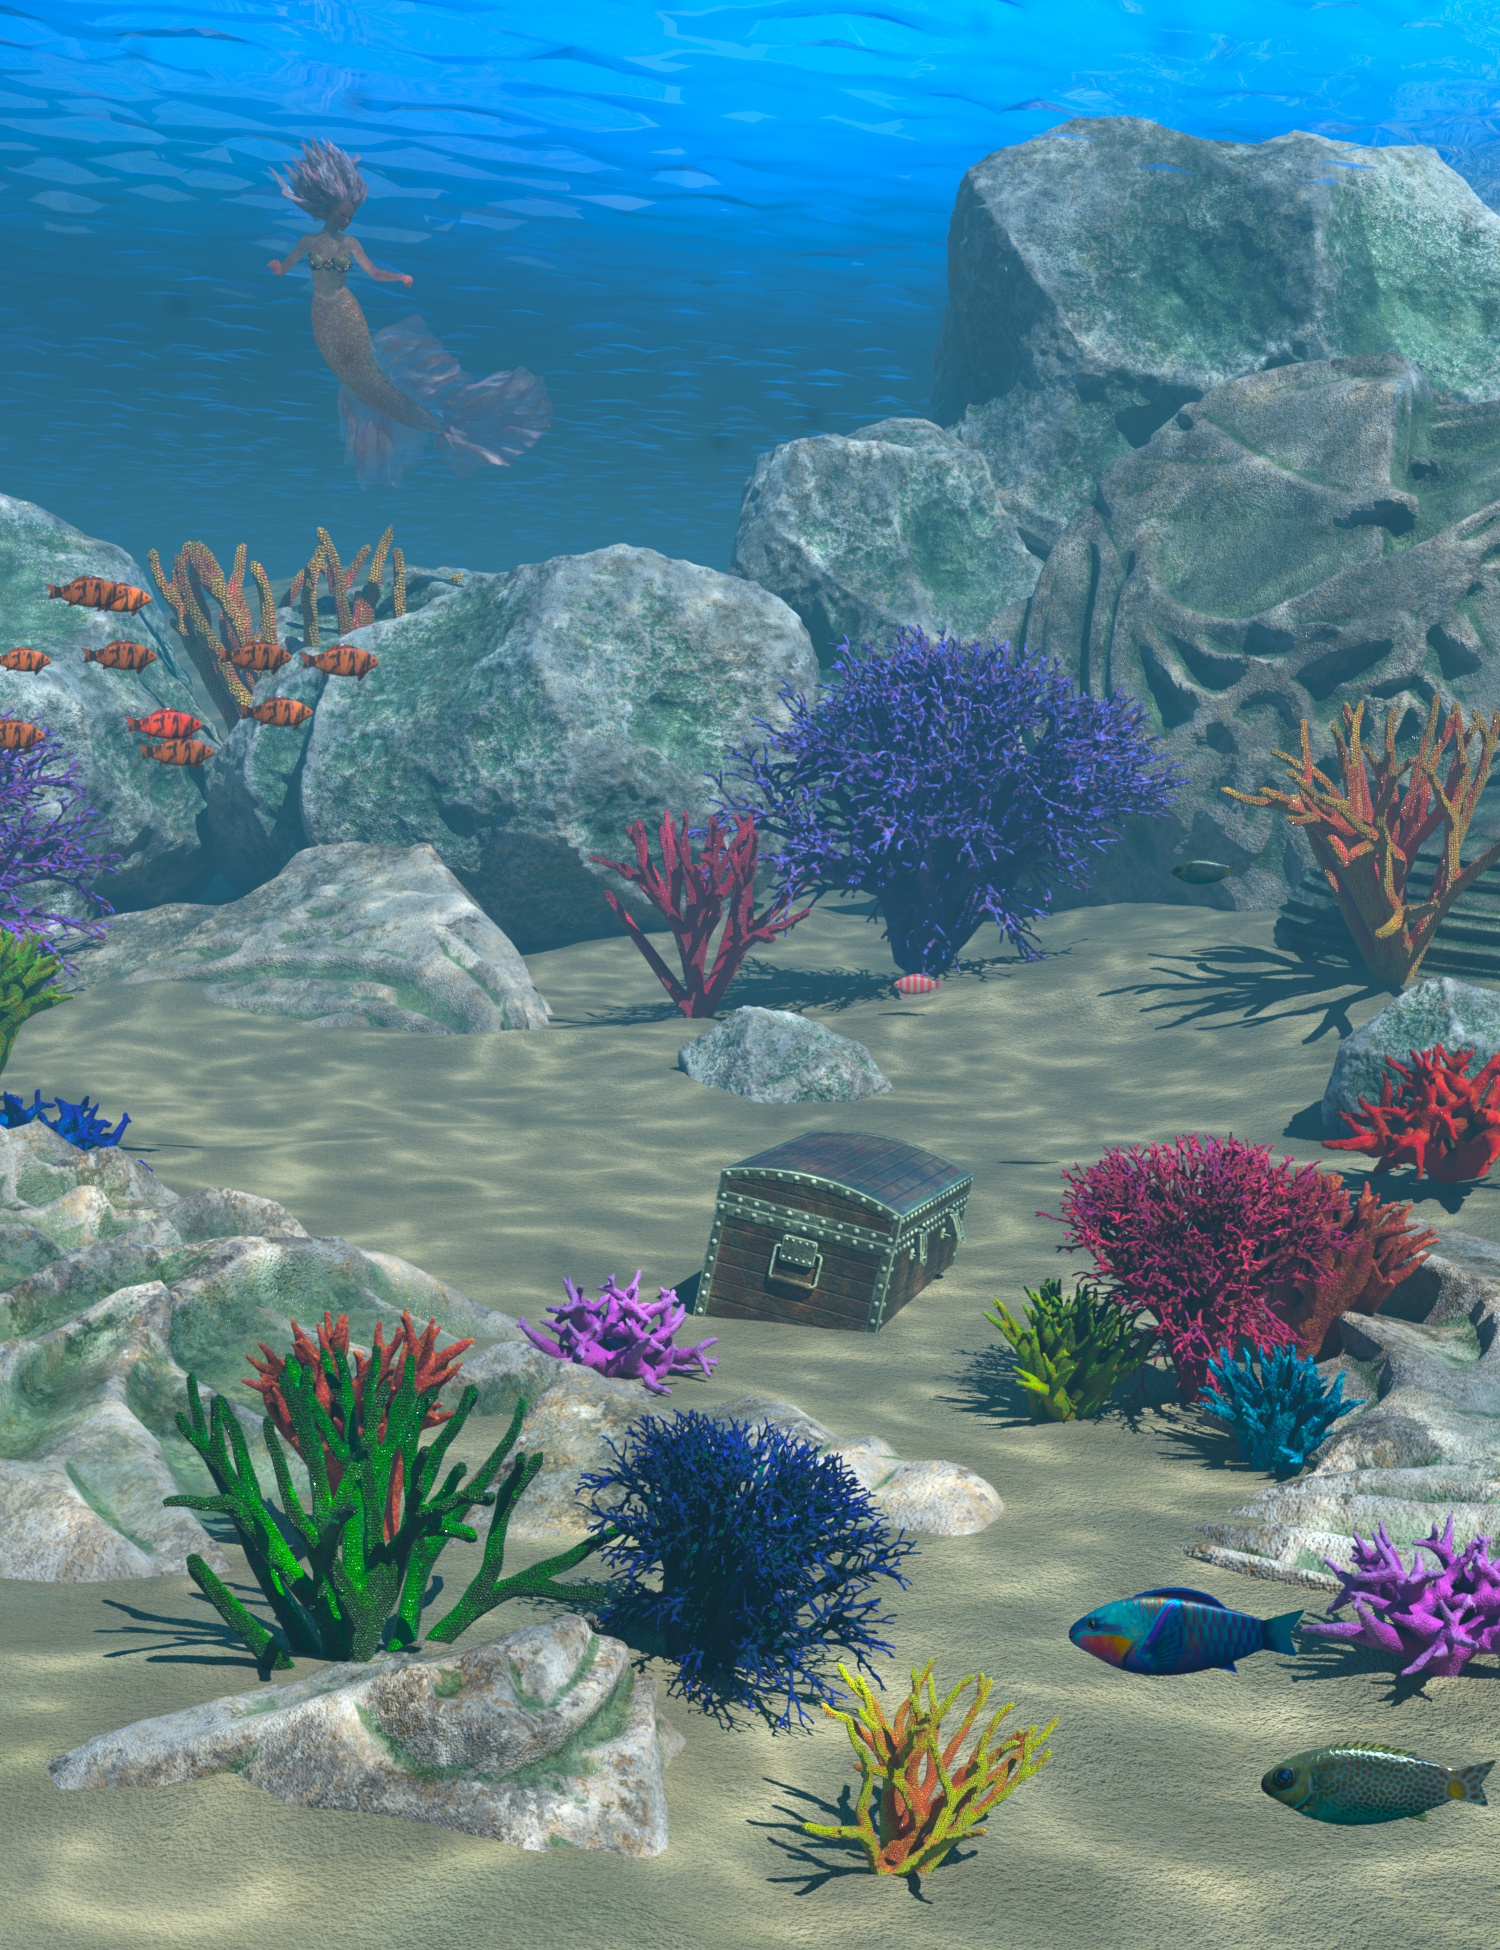 Underwater Shred by: 3D-GHDesignSadeAe Ti, 3D Models by Daz 3D